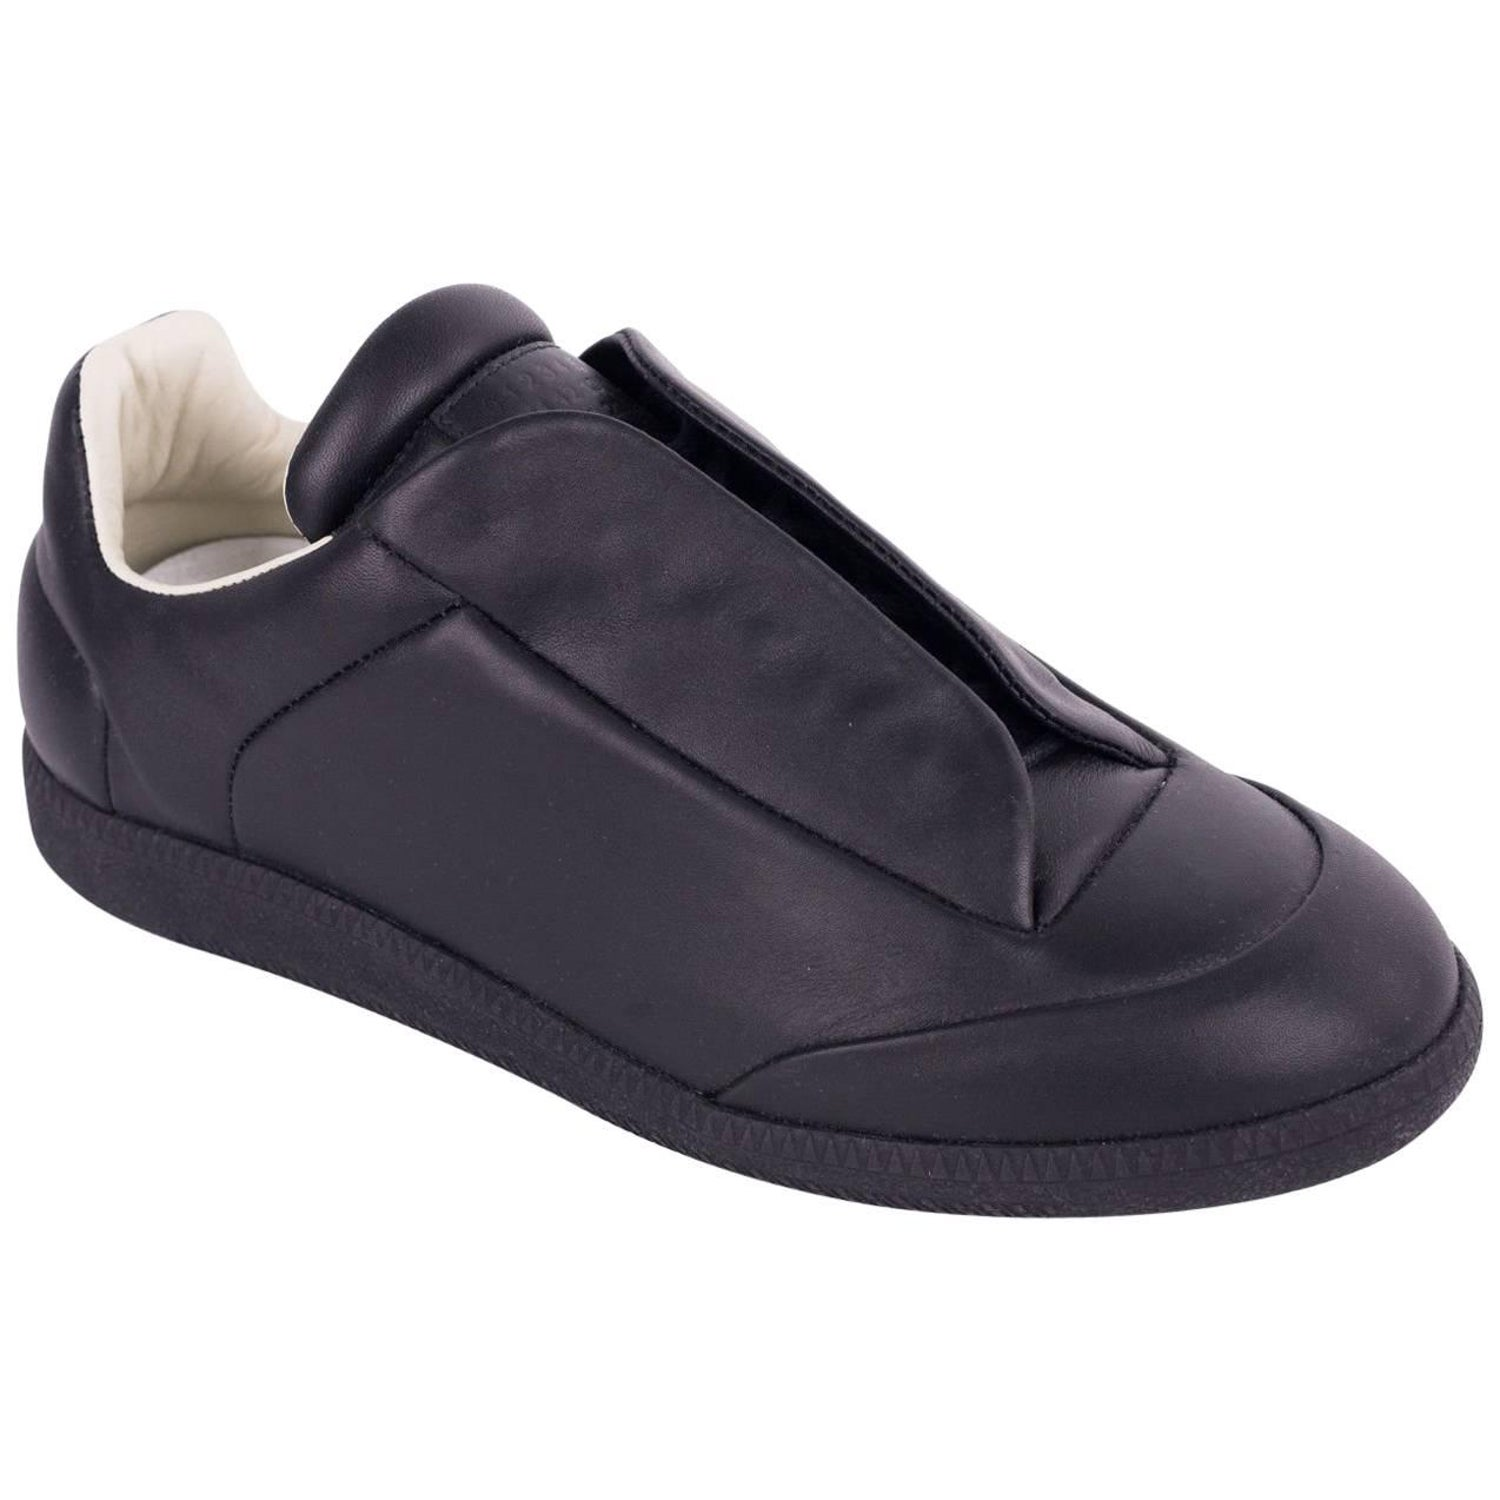 7bd55d69301 Maison Margiela Mens Black Leather Future Low Top Sneakers For Sale at  1stdibs